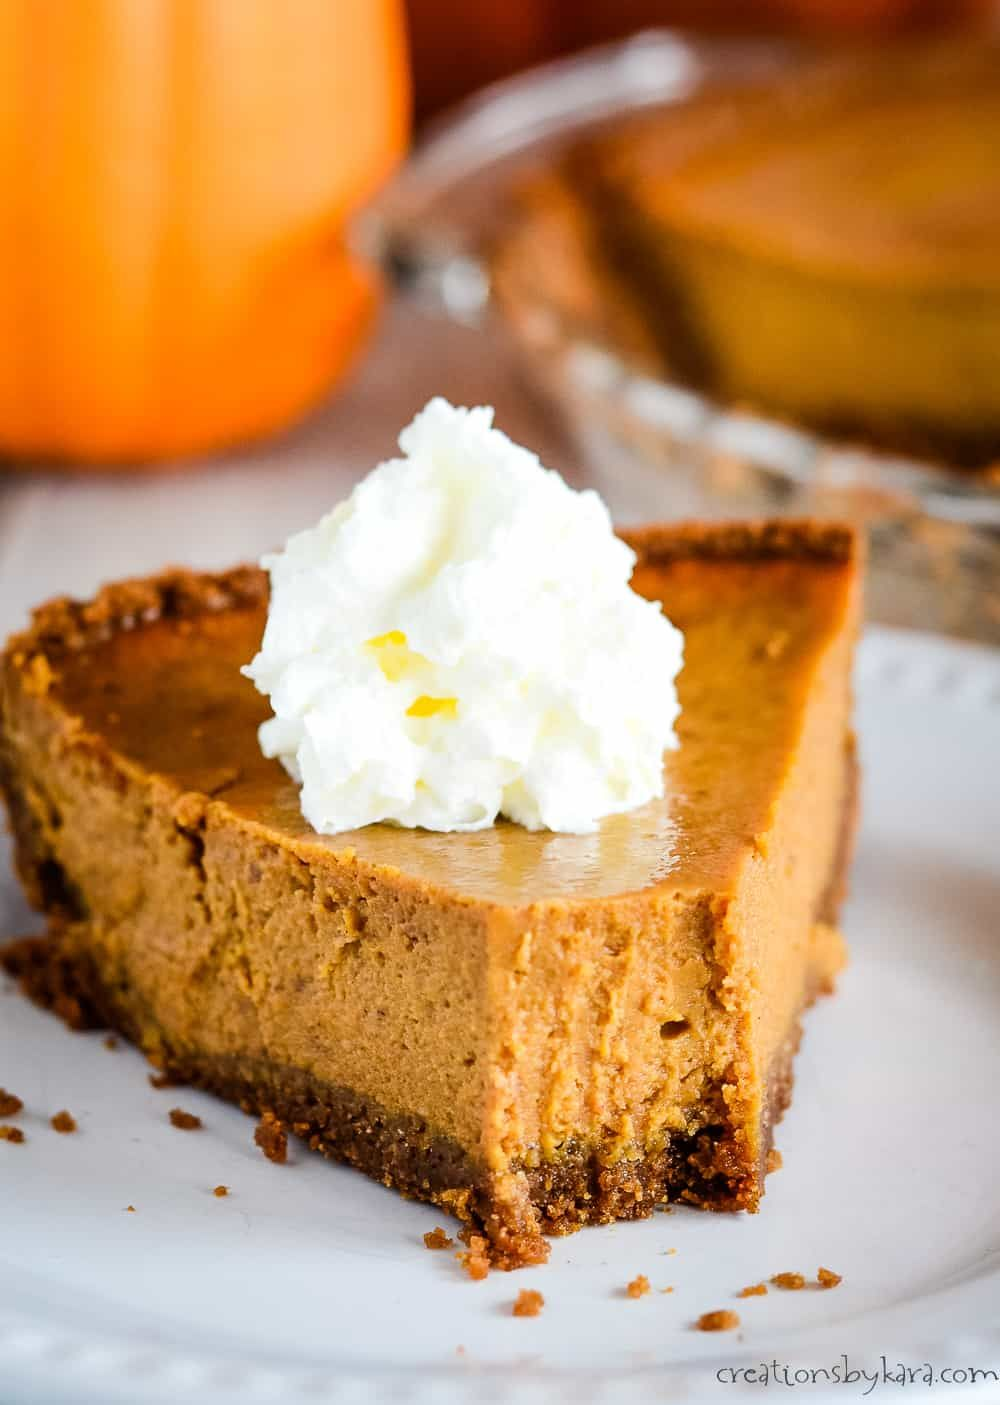 Pumpkin Pie With Sweetened Condensed Milk Is Incredibly Easy To Make And Tastes Fantastic A Bisco Pumpkin Pie Recipes Pumpkin Pie Recipe Easy Easy Pie Recipes